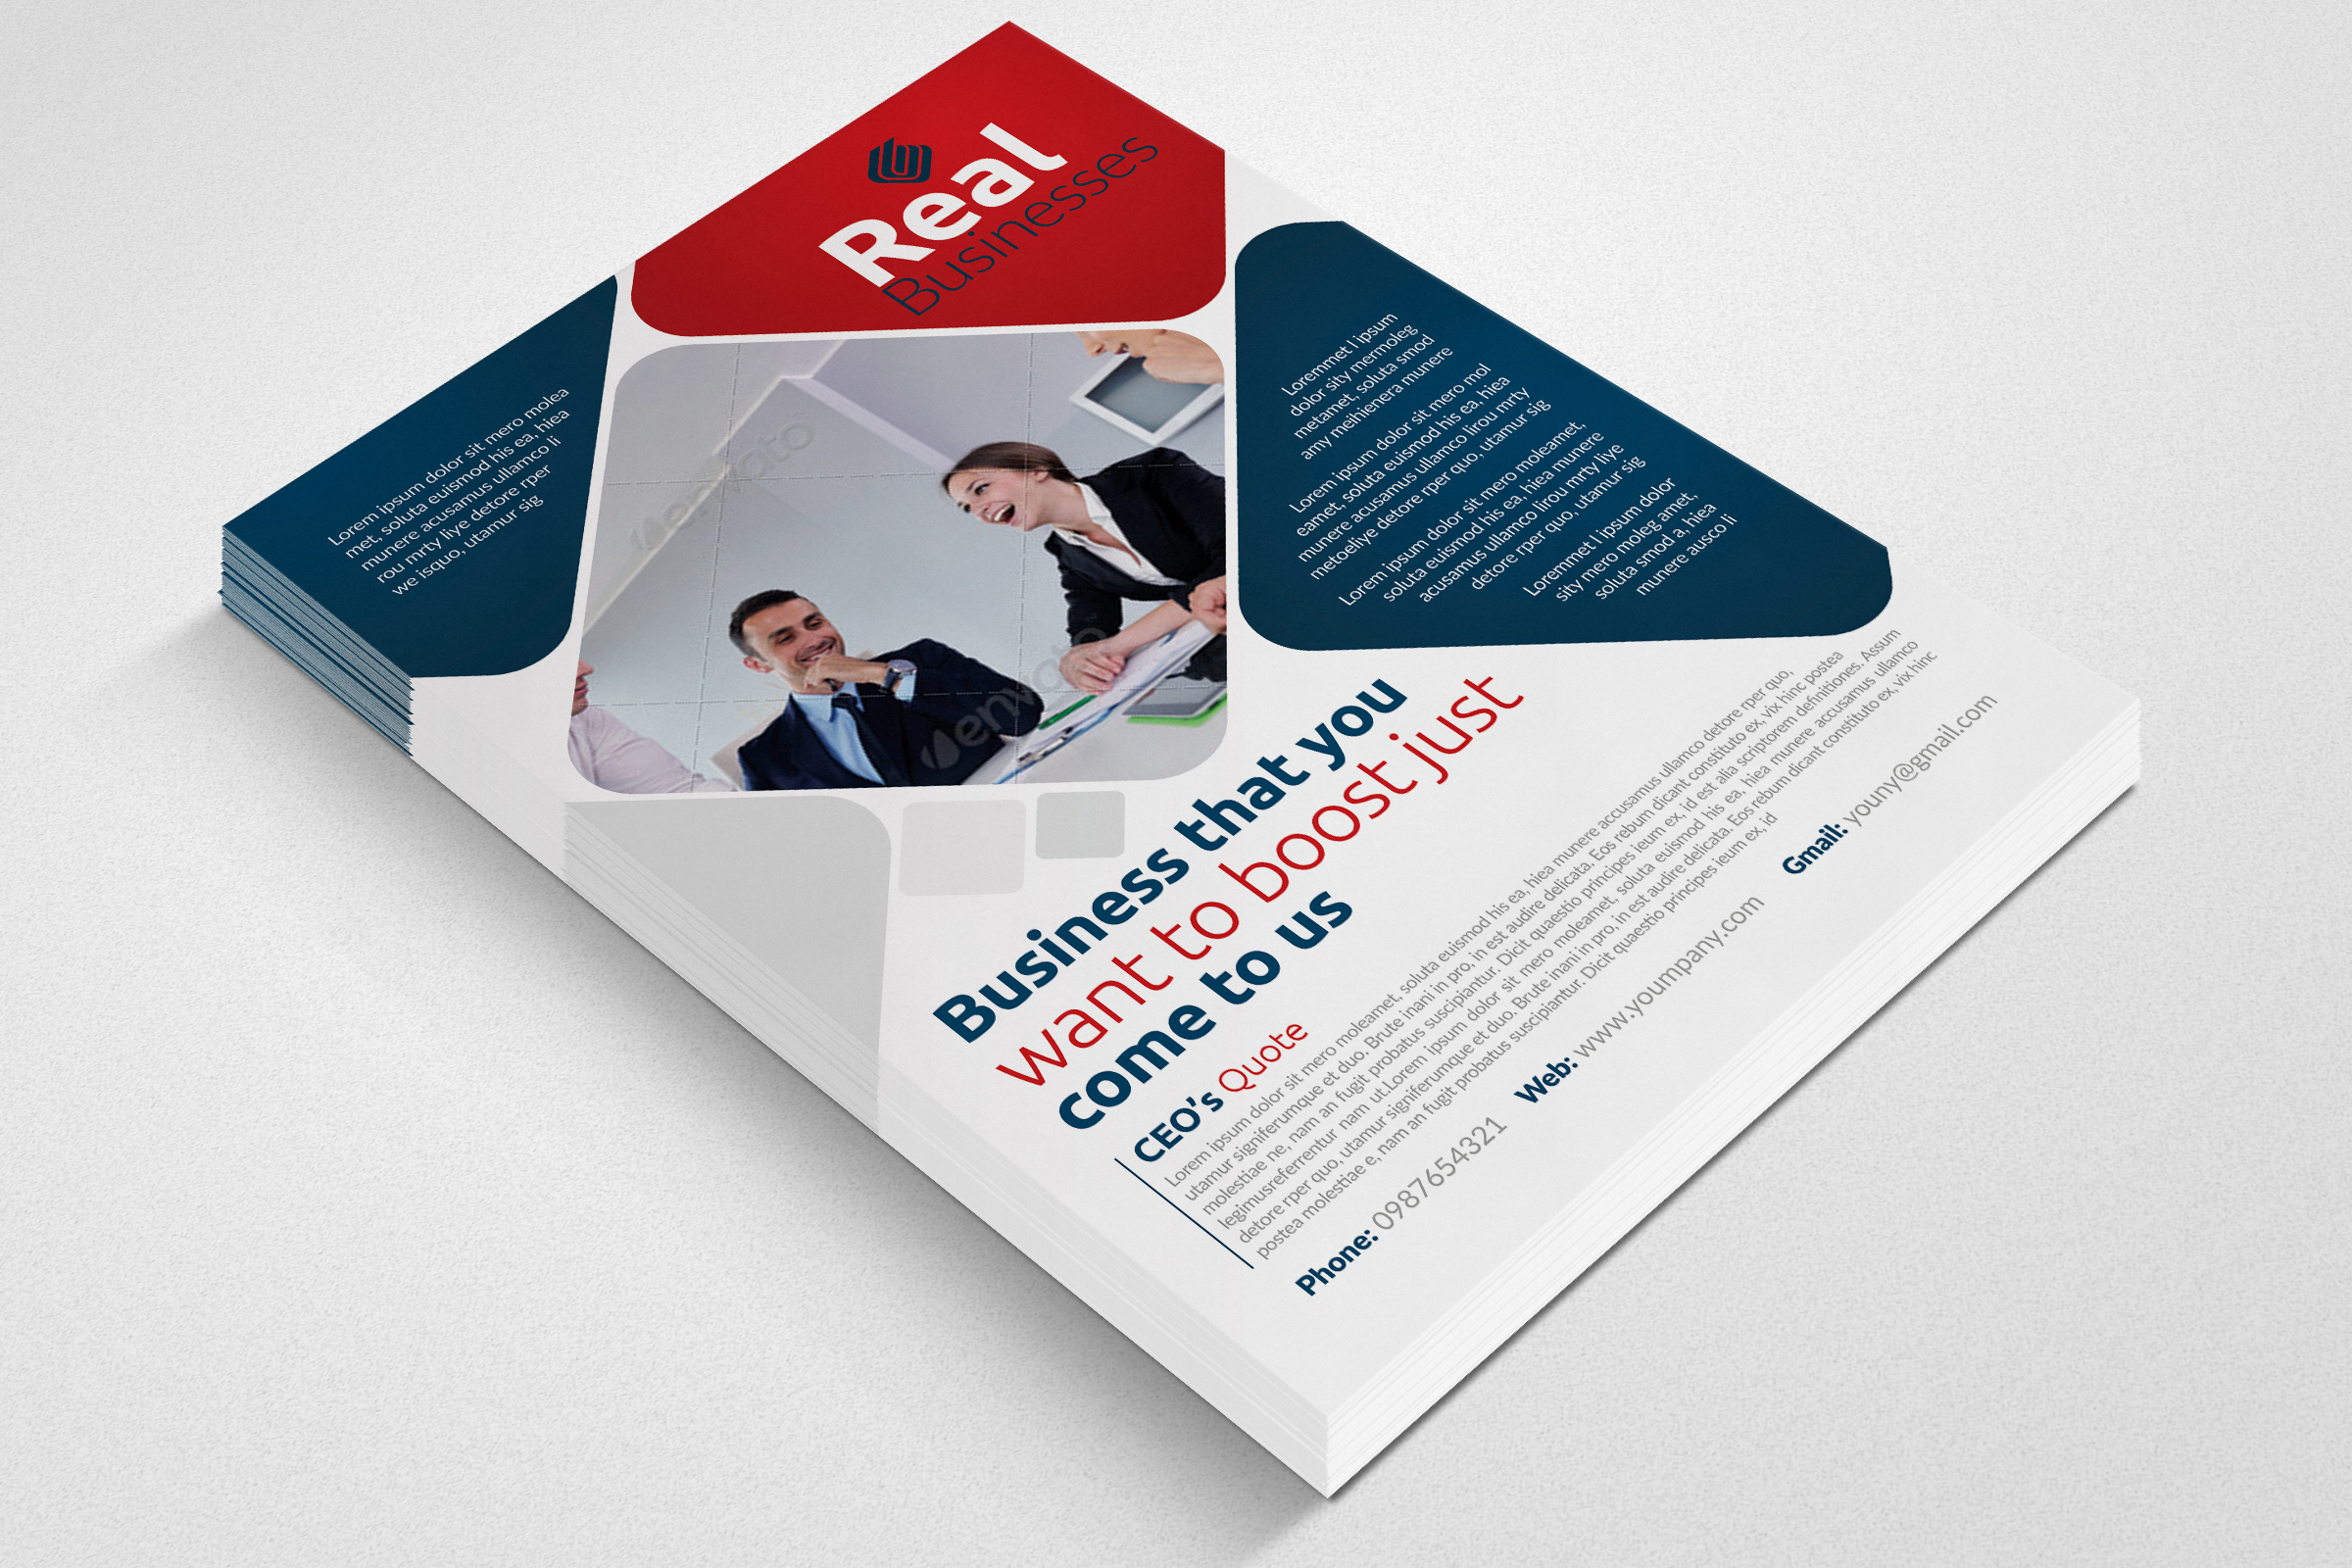 Business Solutions Consultant Flyer example image 2